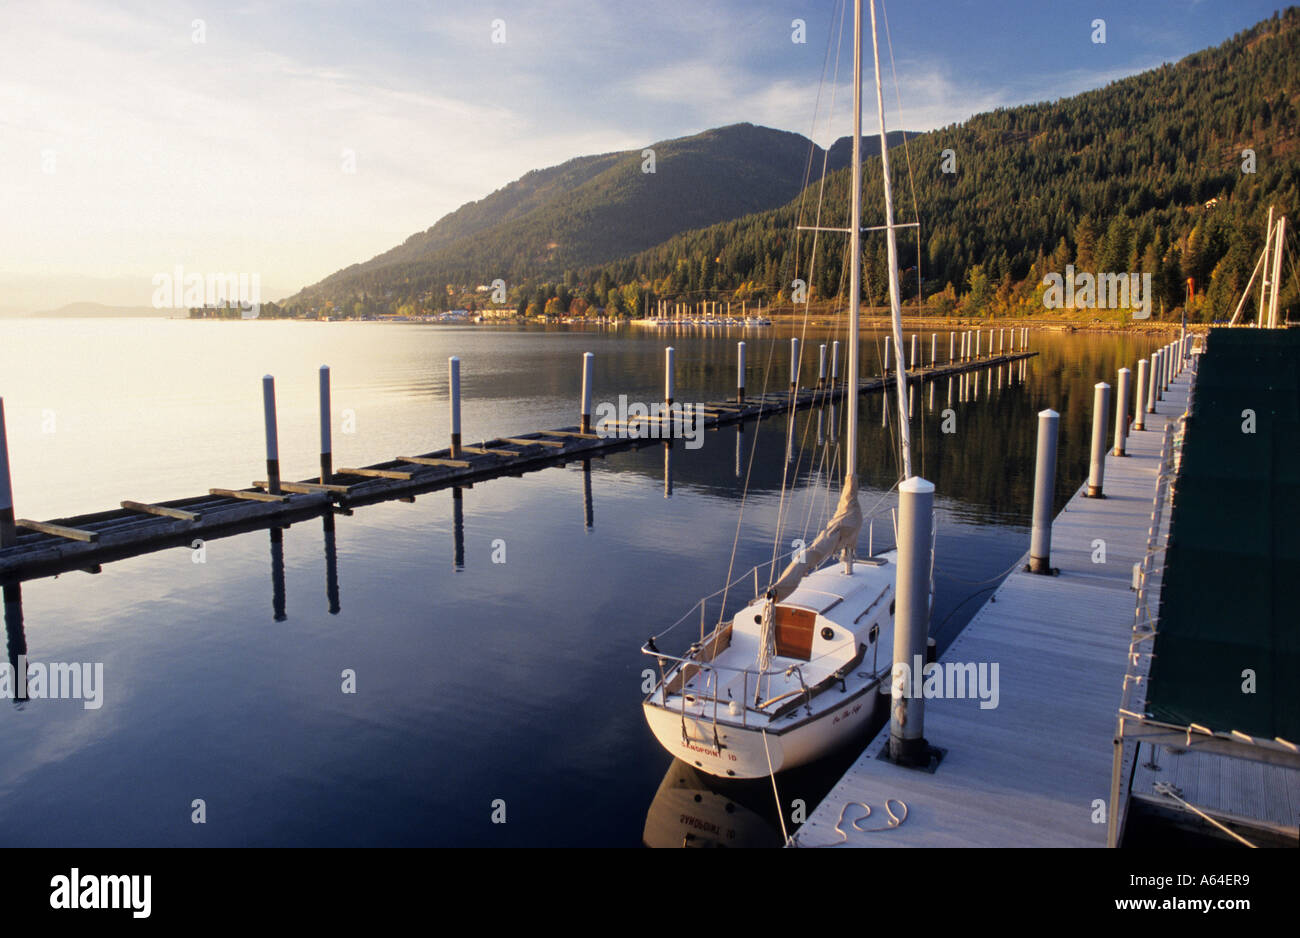 Sailboat in the harbour of Hope, Lake Pend Oreille, Idaho, USA - Stock Image